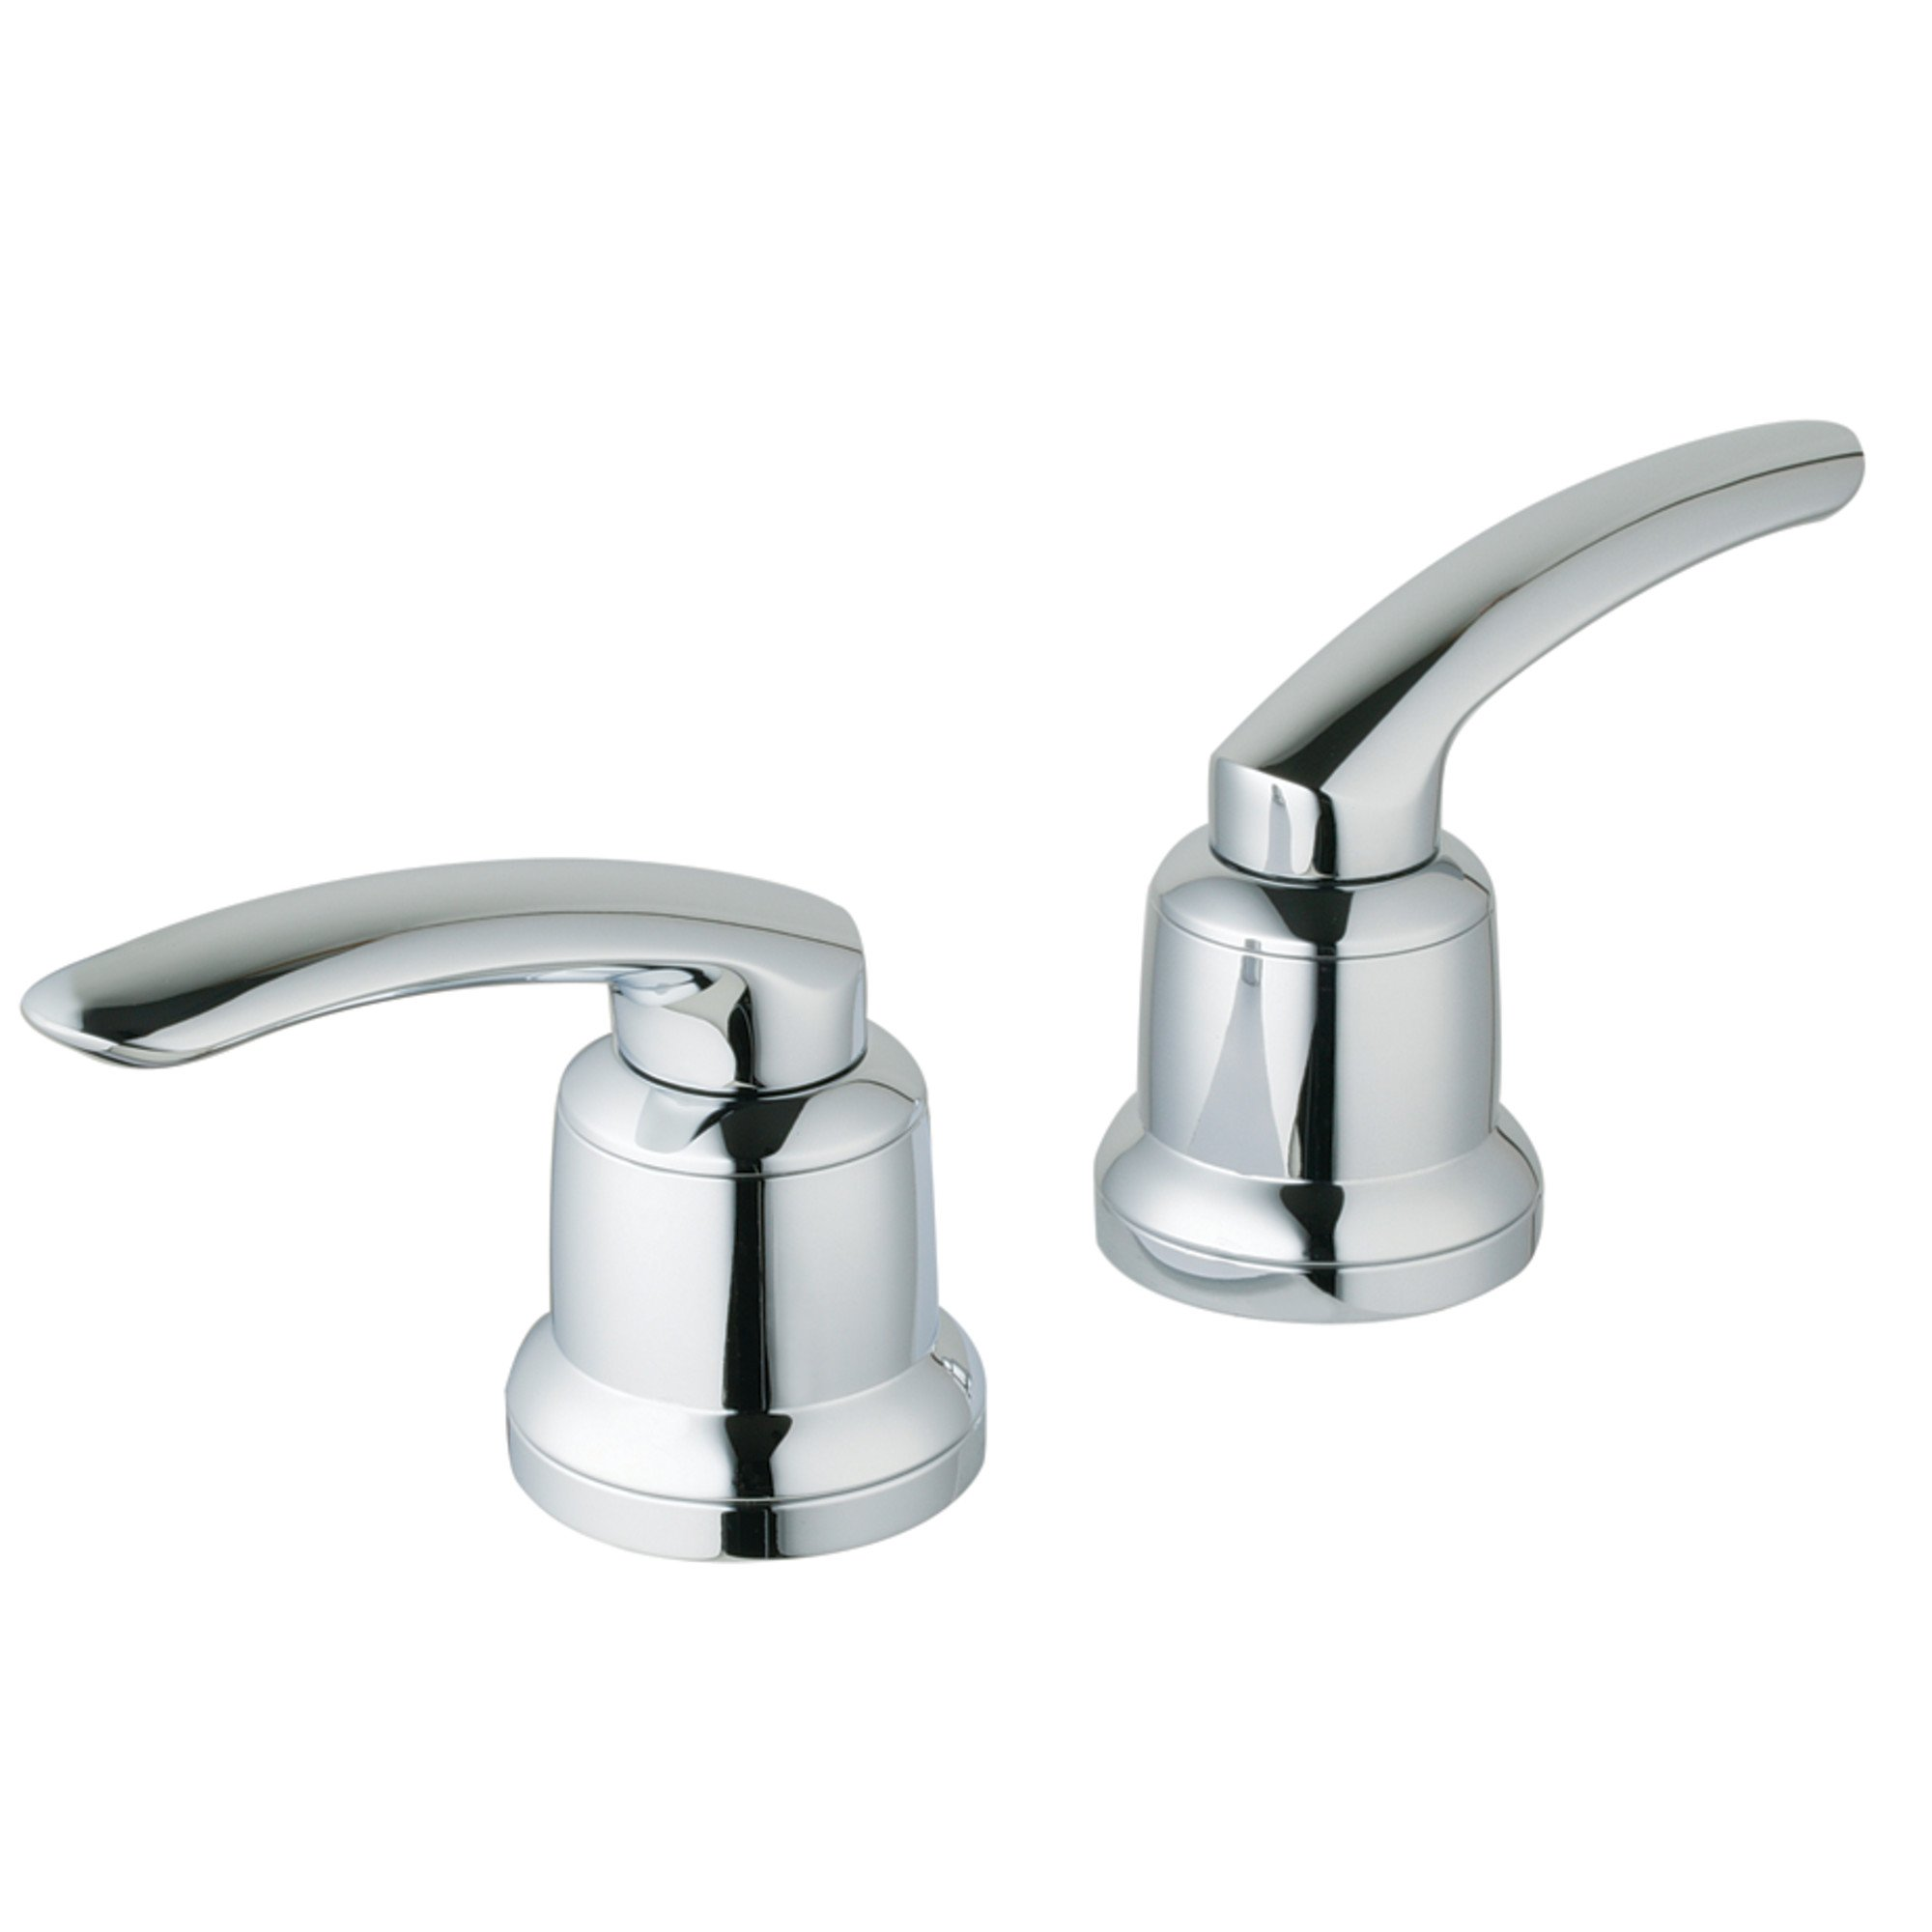 Talia Volo Lever Handles by GROHE (Image #1)